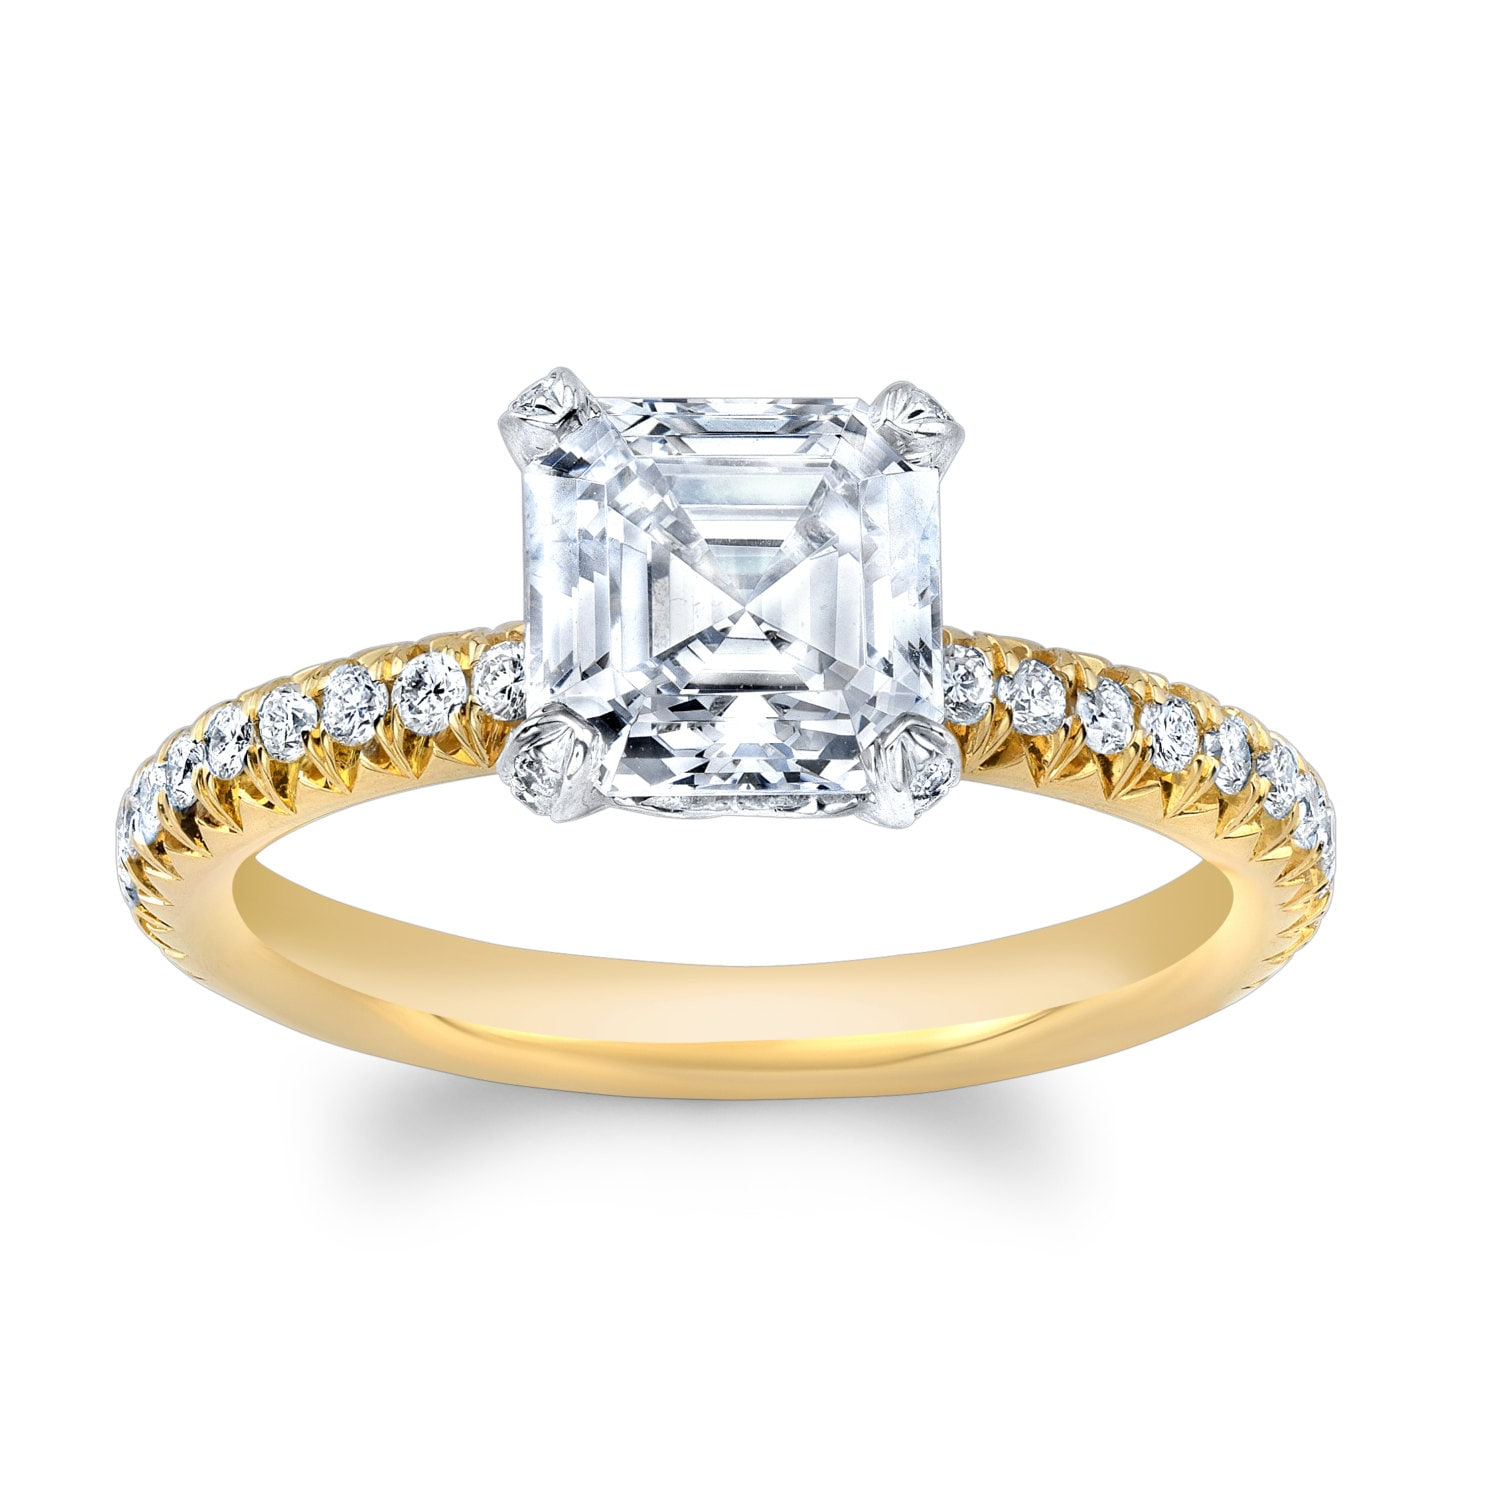 ring bridal iroff diamond gold engagement rings white shop classic son cut asscher